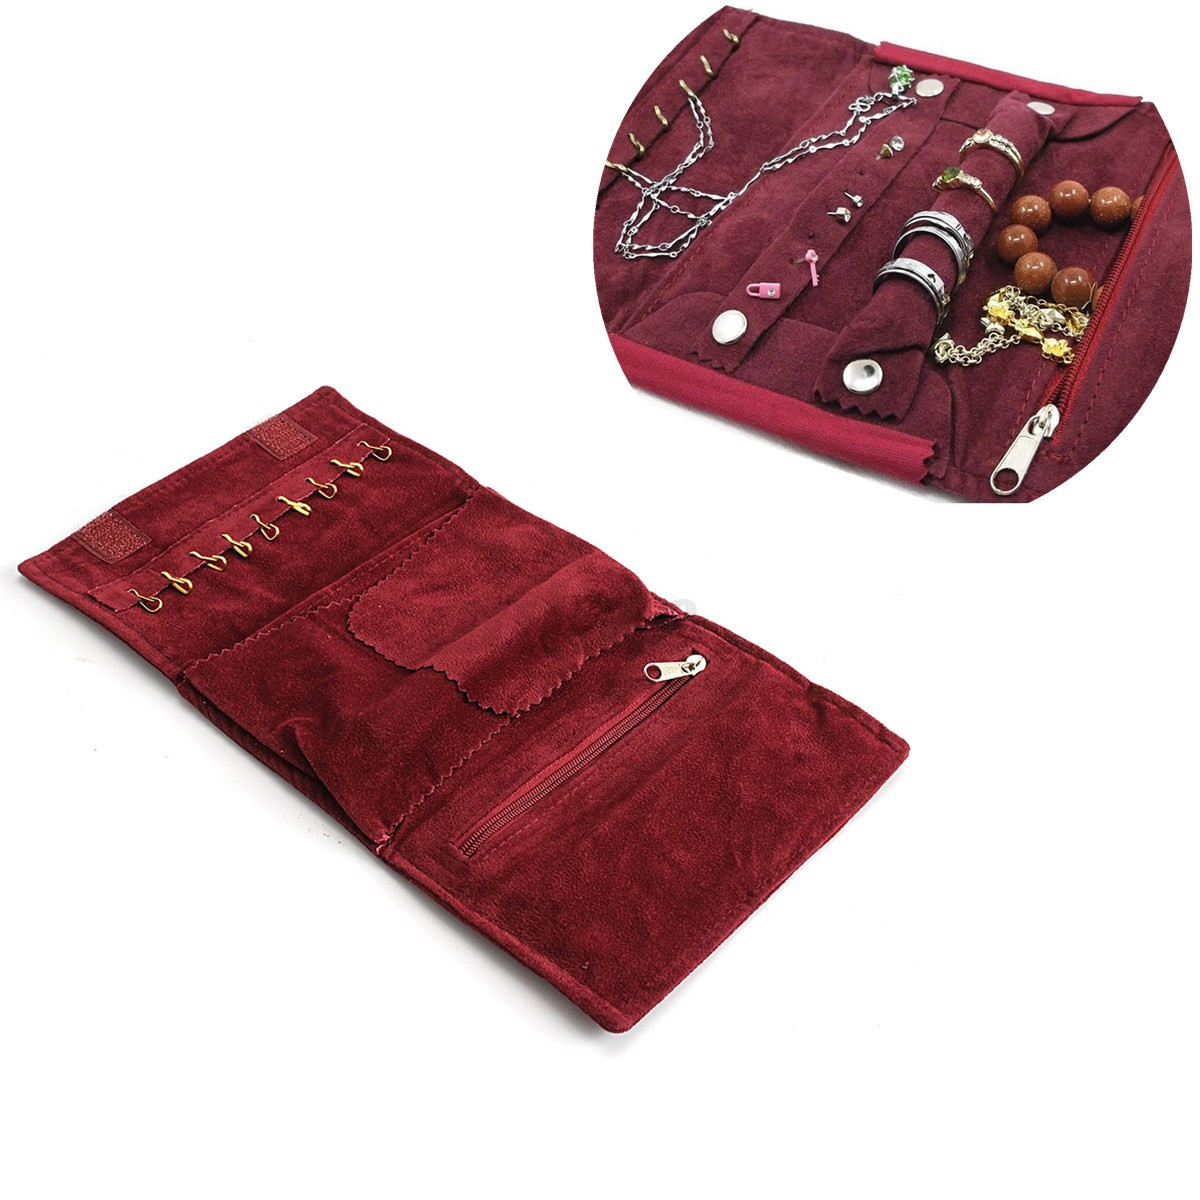 Velvet Travel Jewelry Case Roll Bag Organizer Necklace